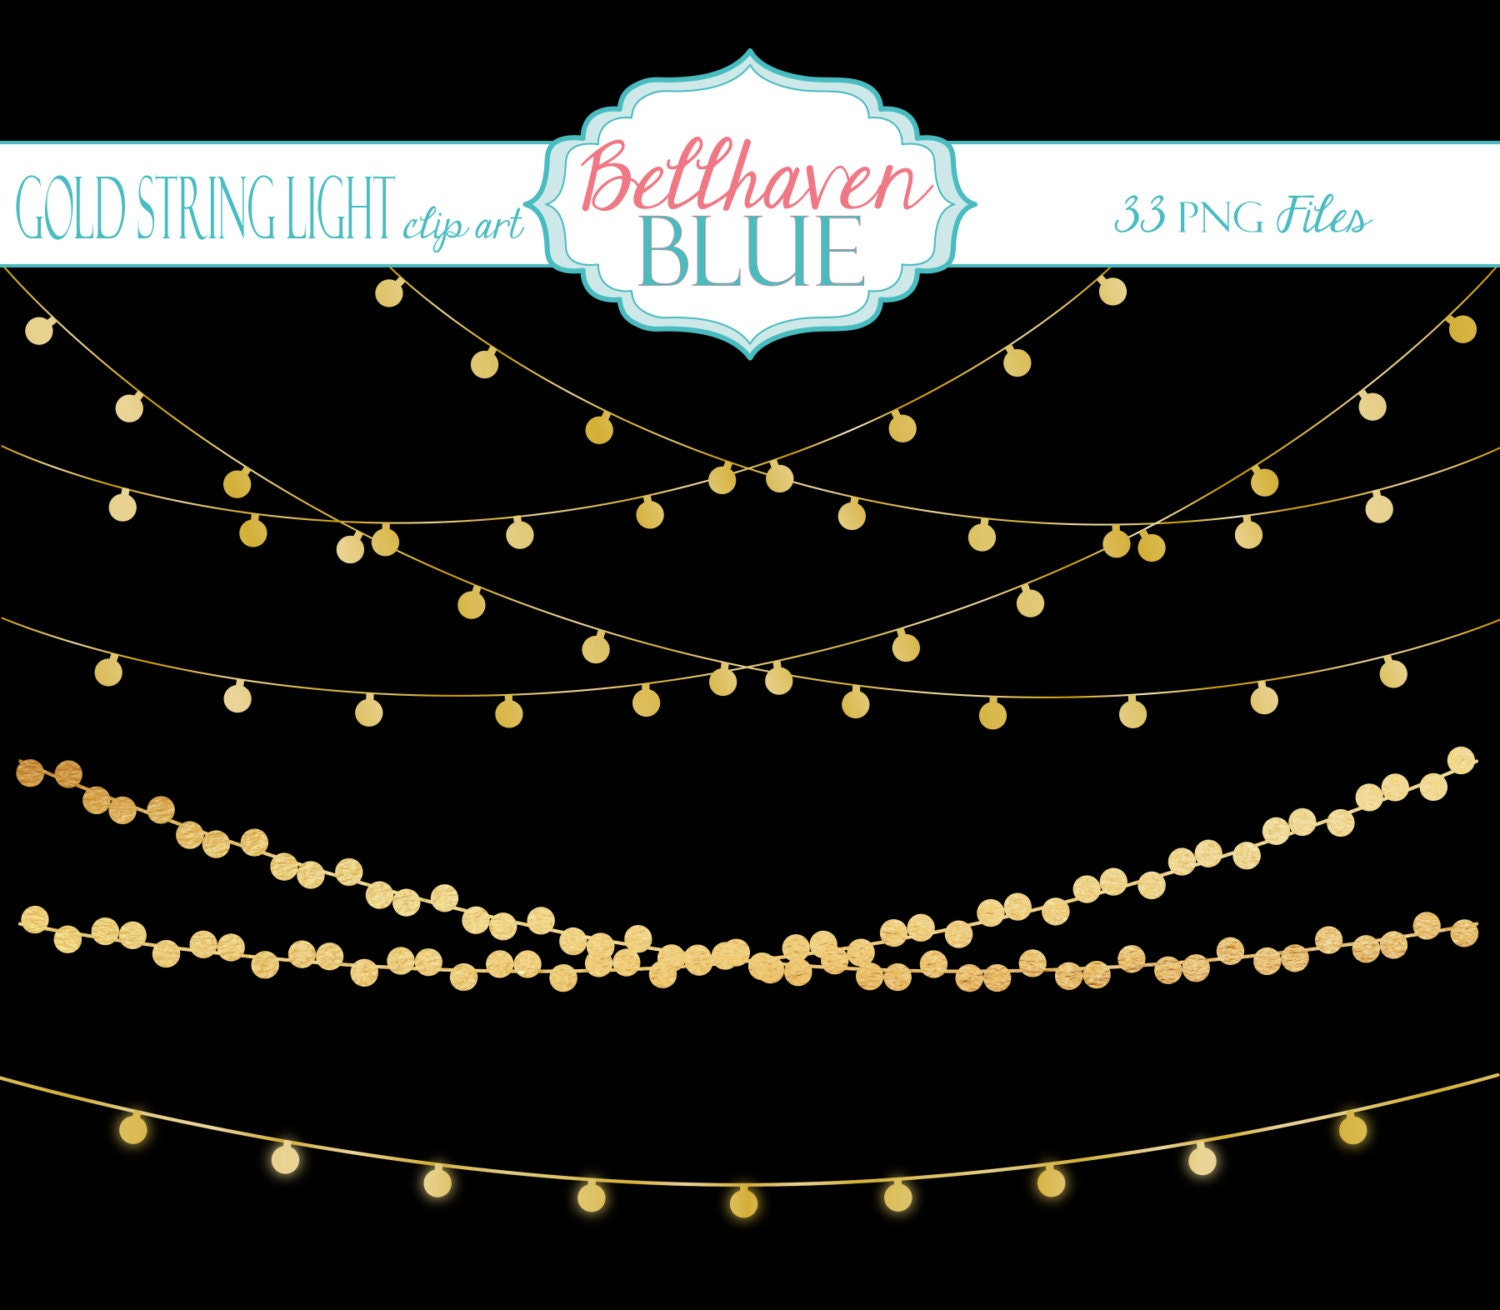 Gold String Light Clipart by BellhavenBlue on Etsy